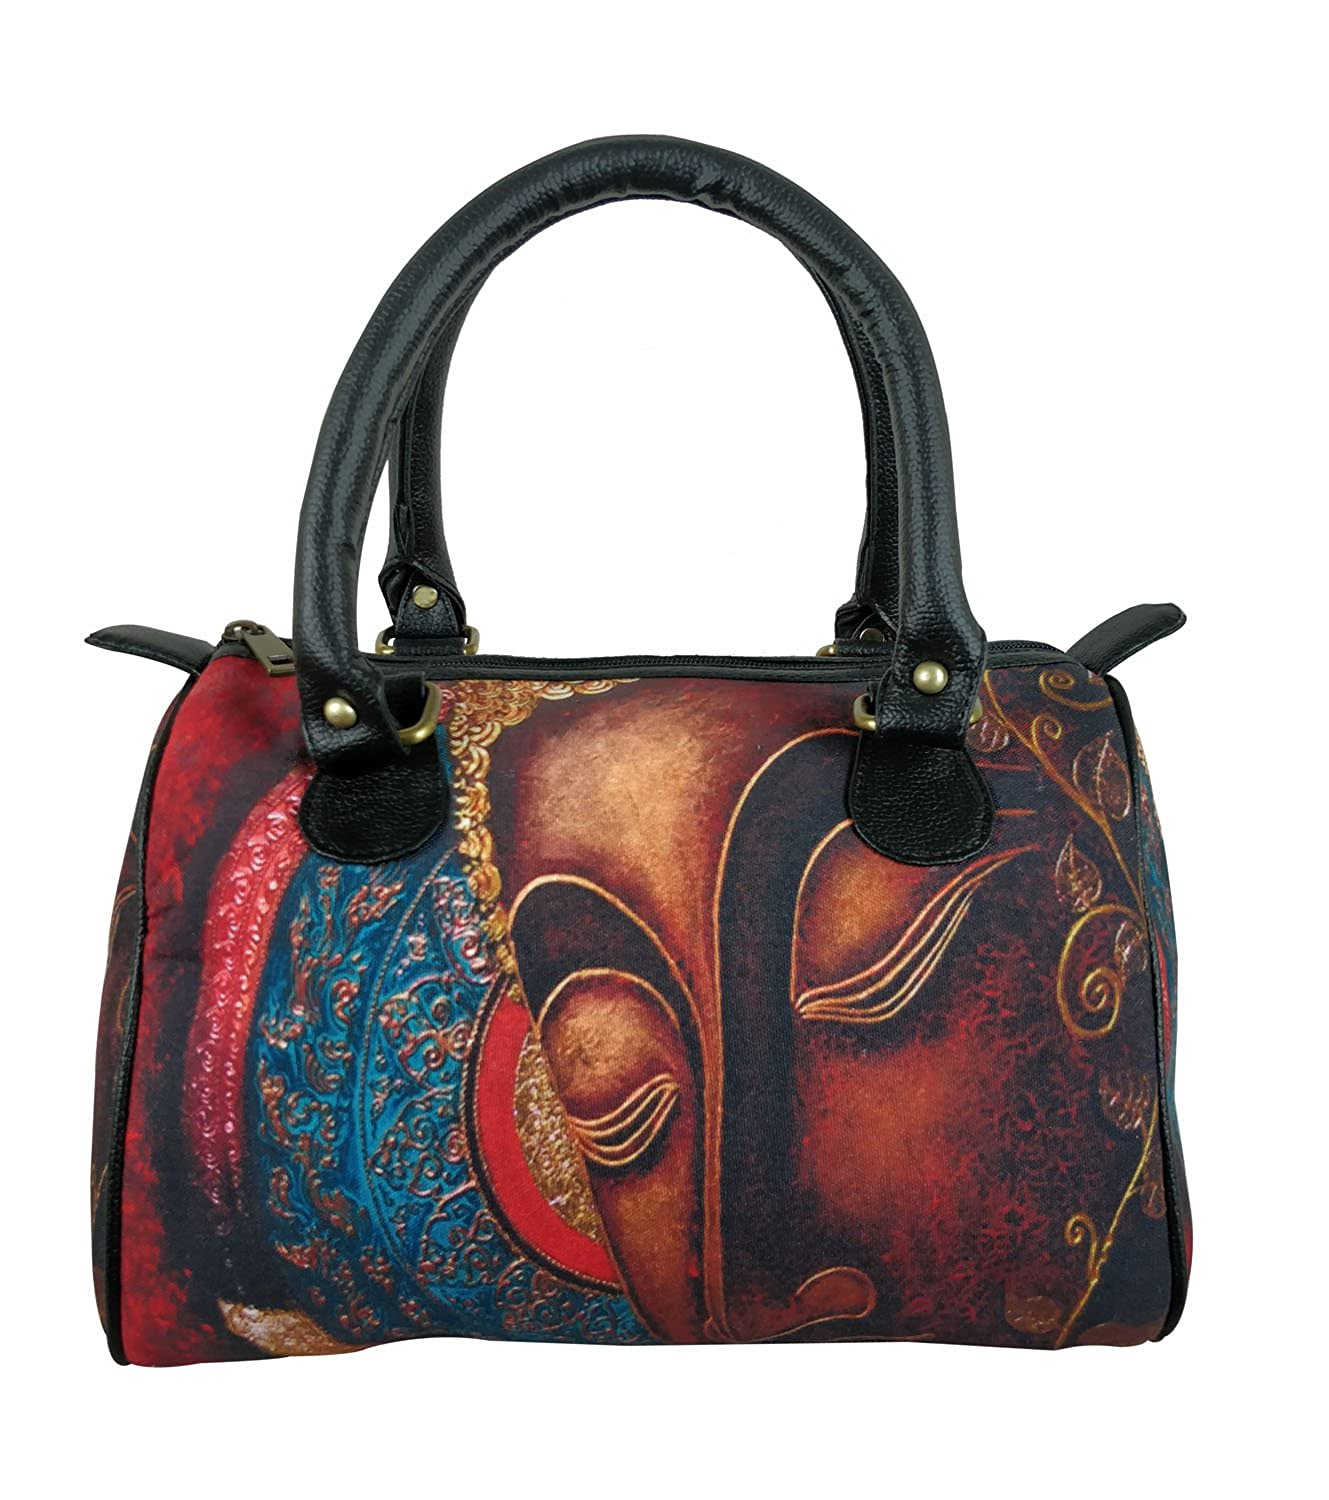 5bc6ab0061 Chelsey Chelsey Abstract designs Speedy Stylish handbags for women and girls   Amazon.in  Clothing   Accessories